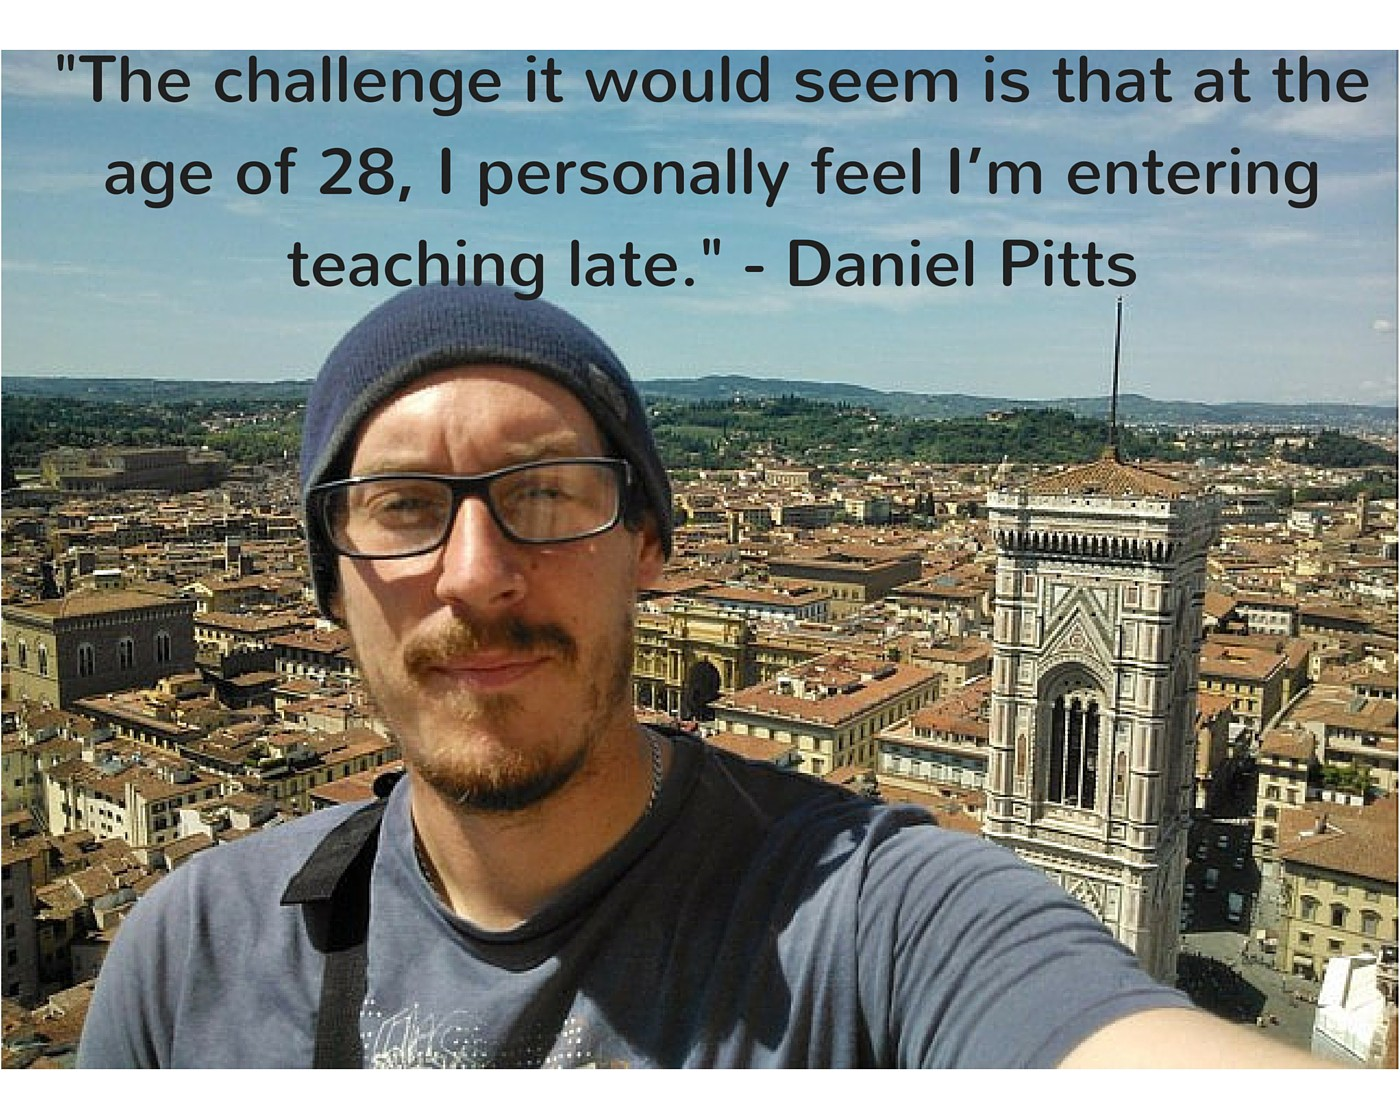 Daniel education system - Daniel Pitts Shares His Thoughts On Joining The Primary Education System